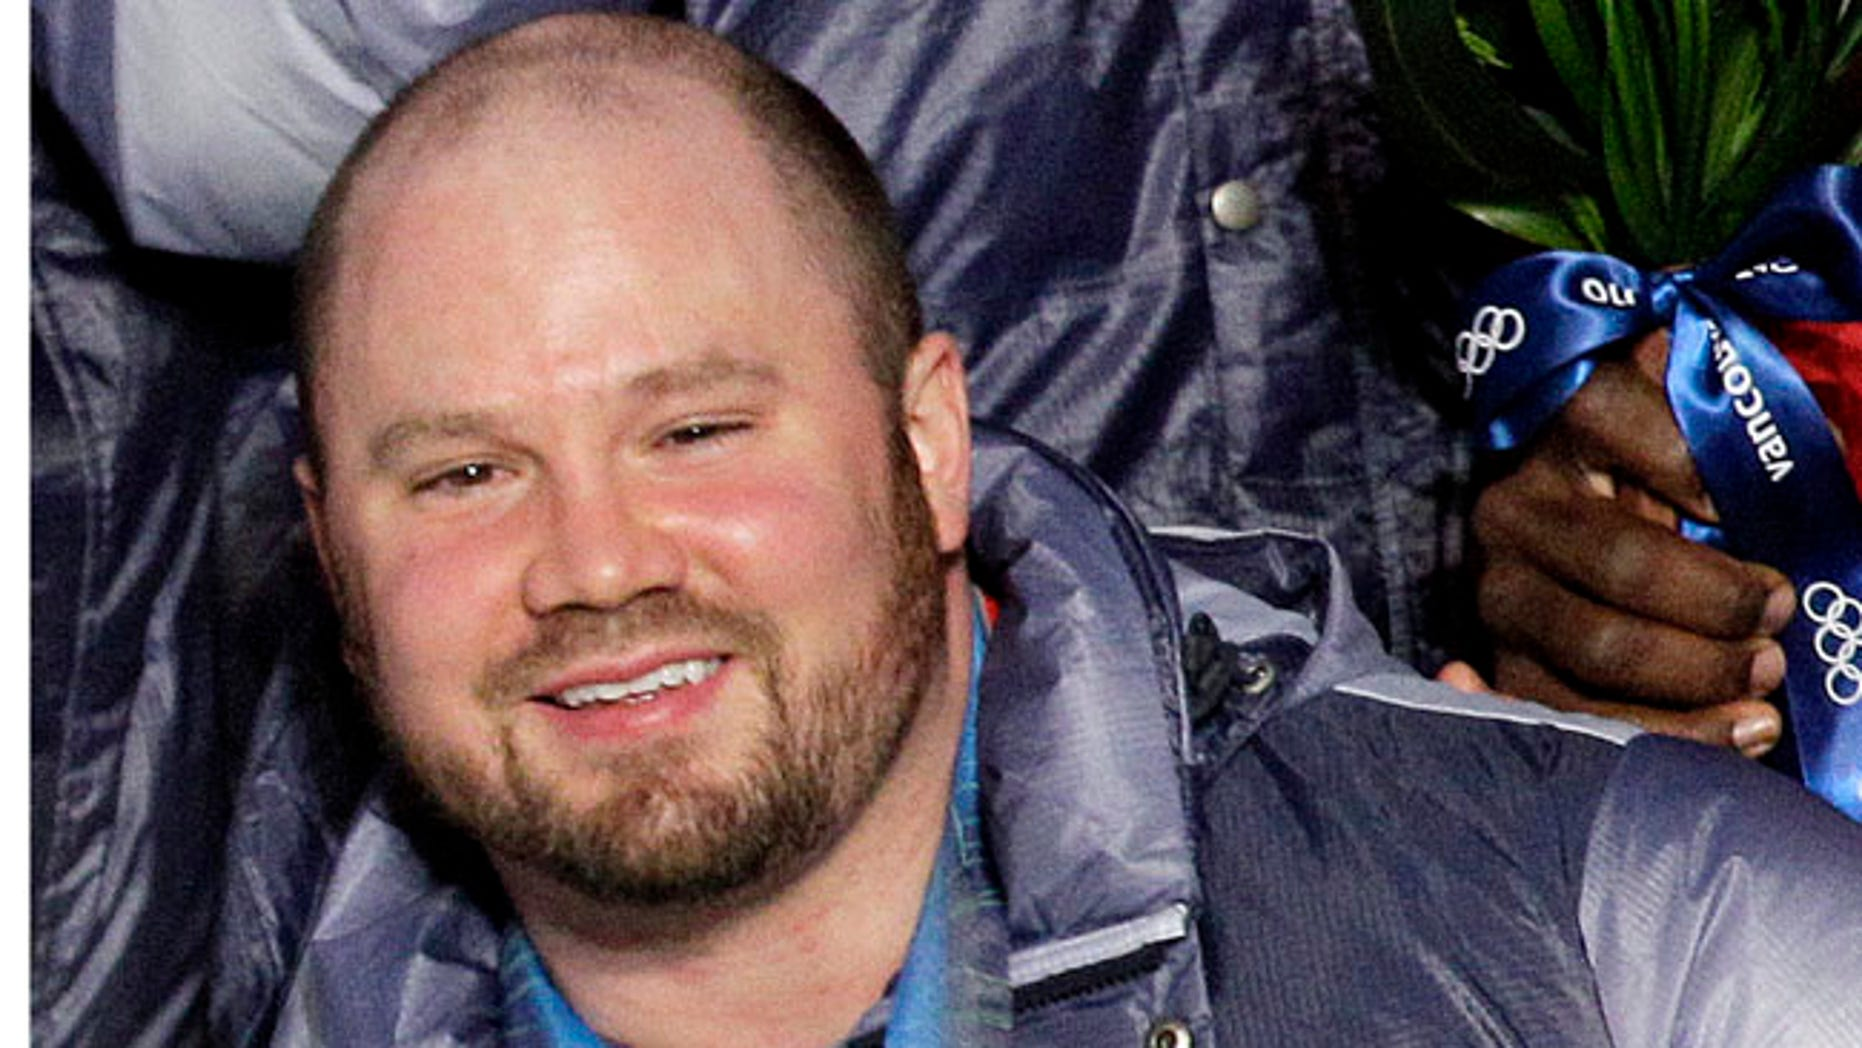 FILE - In this Feb. 27, 2010, file photo, Steven Holcomb, of the United States, poses with his gold medal in the men's four-man bobsled during the medal ceremony at the Vancouver 2010 Olympics in Whistler, British Columbia.  Holcomb, the longtime U.S. bobsledding star who drove to three Olympic medals after beating a disease that nearly robbed him of his eyesight, was found dead in Lake Placid, N.Y., on Saturday, May 6, 2017.  He was 37. (AP Photo/Jin-man Lee, File)